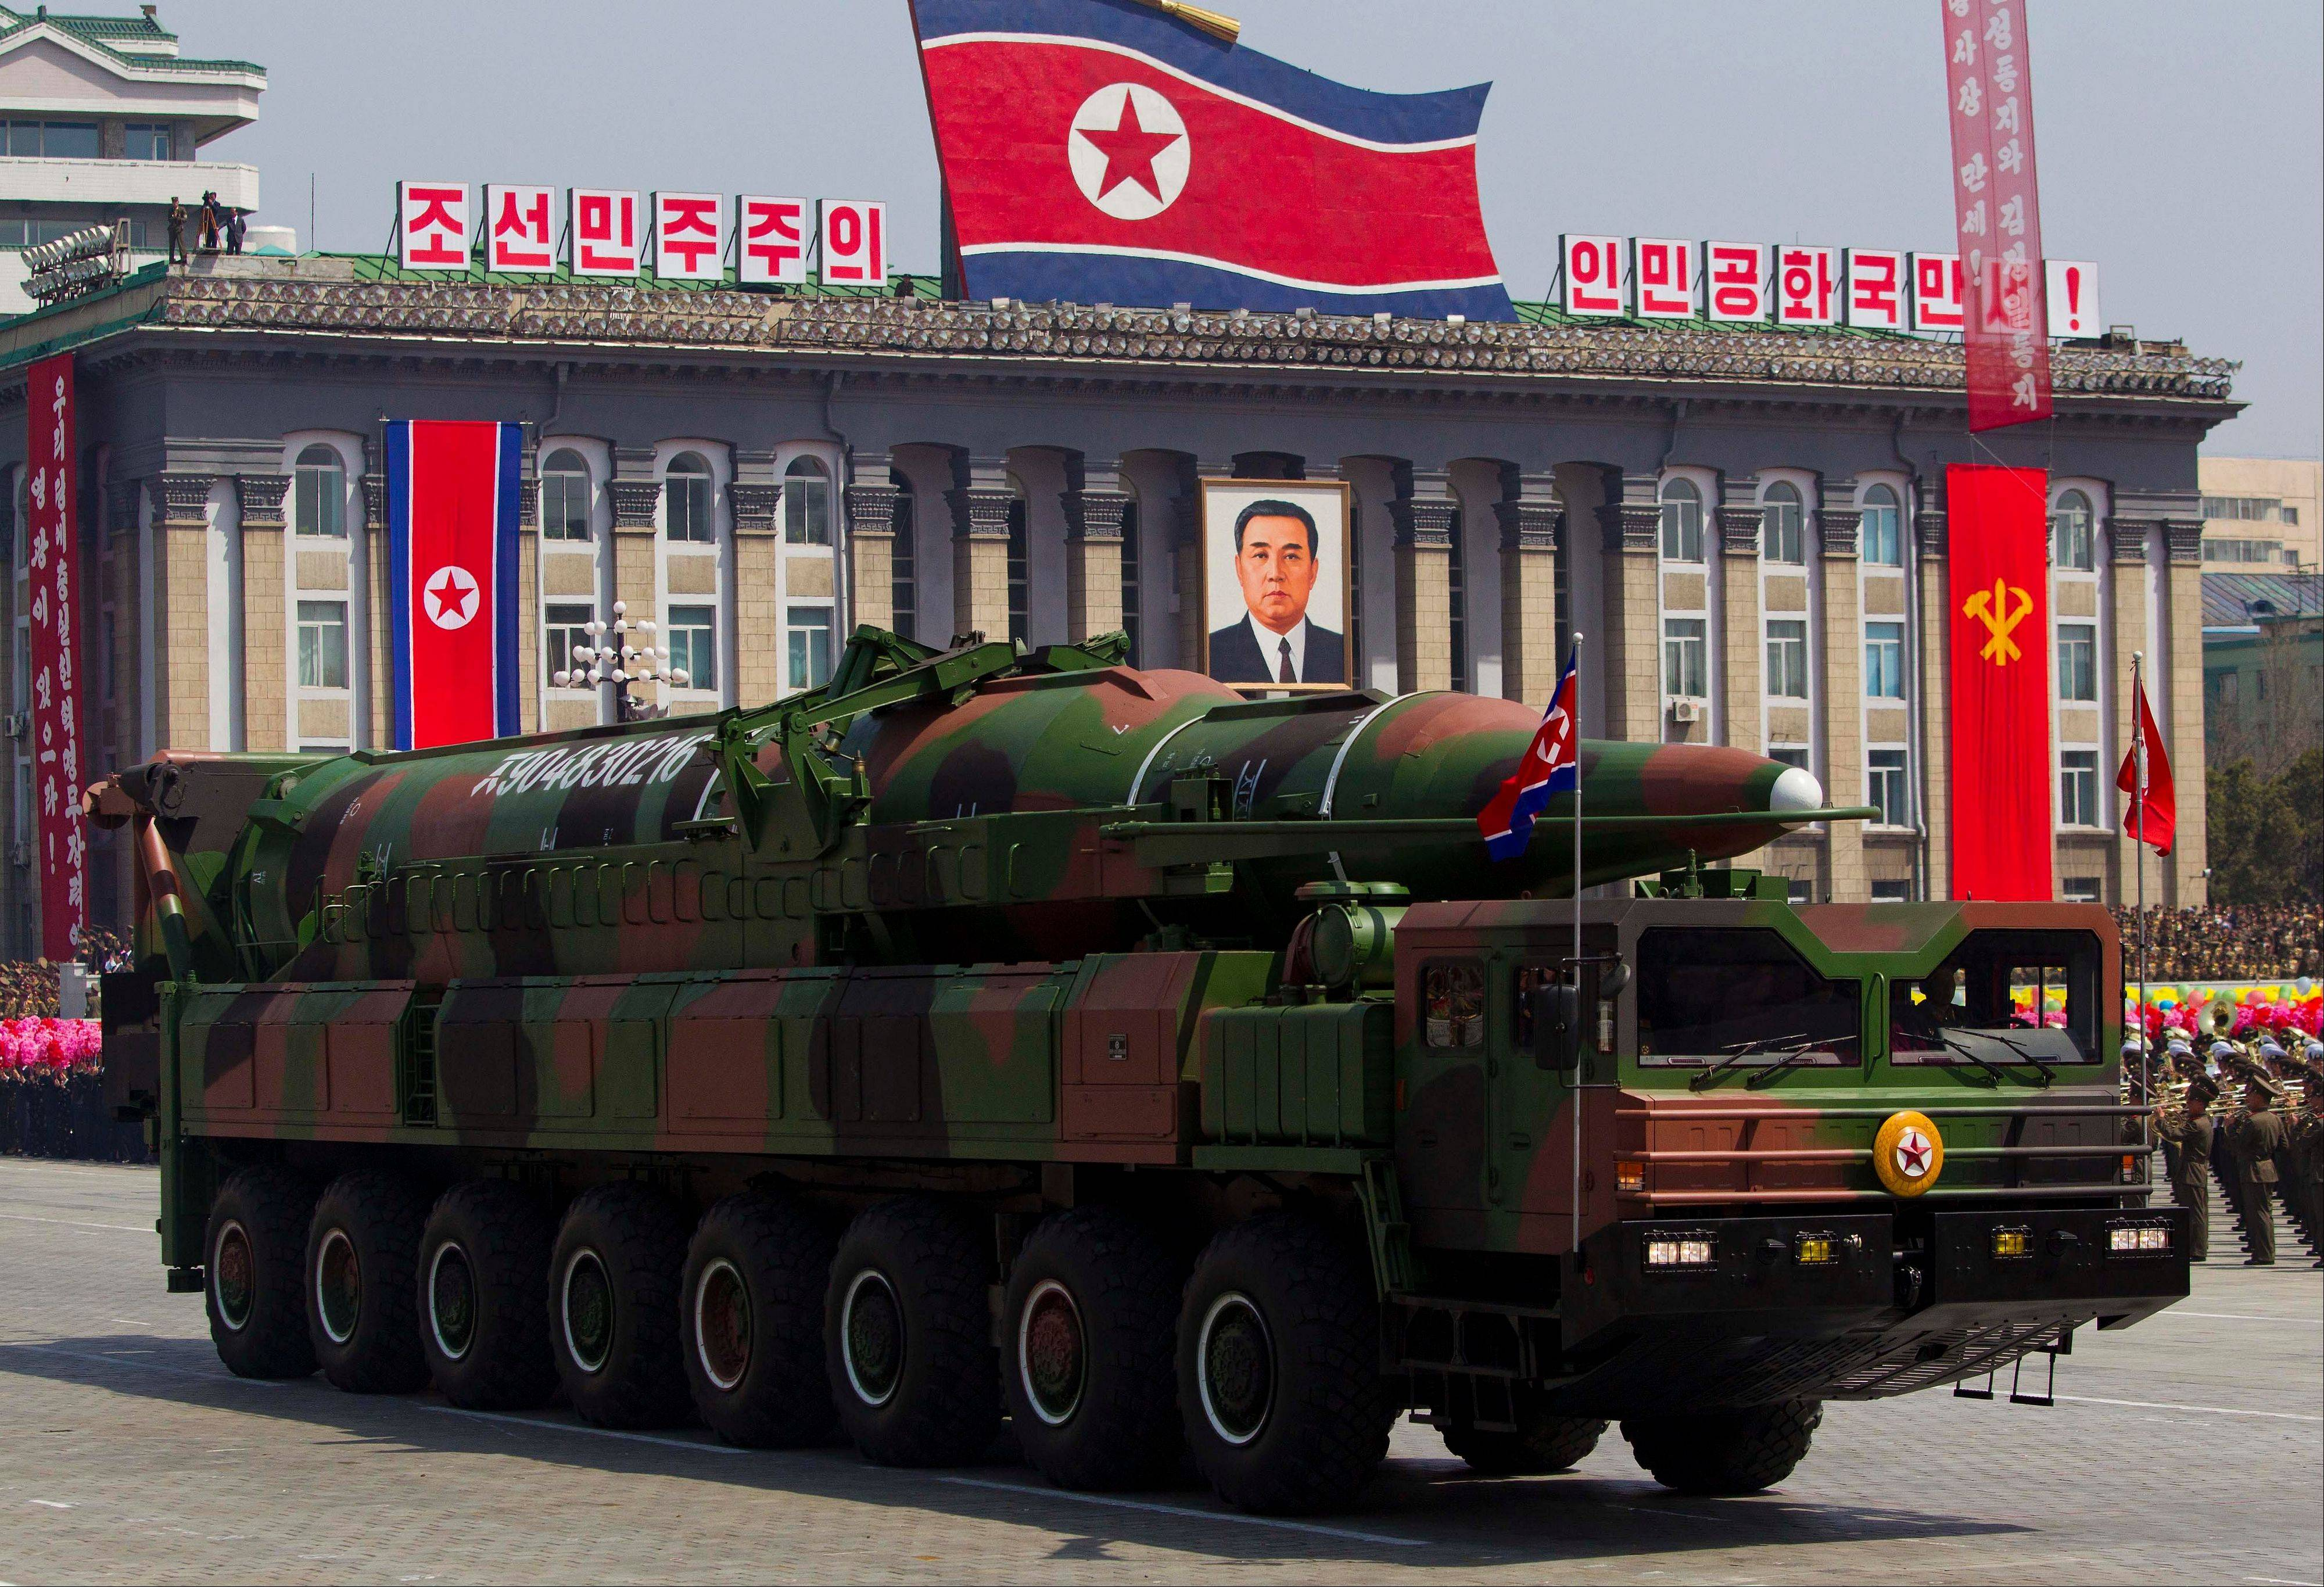 A North Korean vehicle carrying a missile passes by during a mass military parade in 2012. North Korea has moved a missile with �considerable range� to its east coast, South Korean Defense Minister Kim Kwan-jin said, but he added that there are no signs that Pyongyang is preparing for a full-scale conflict.